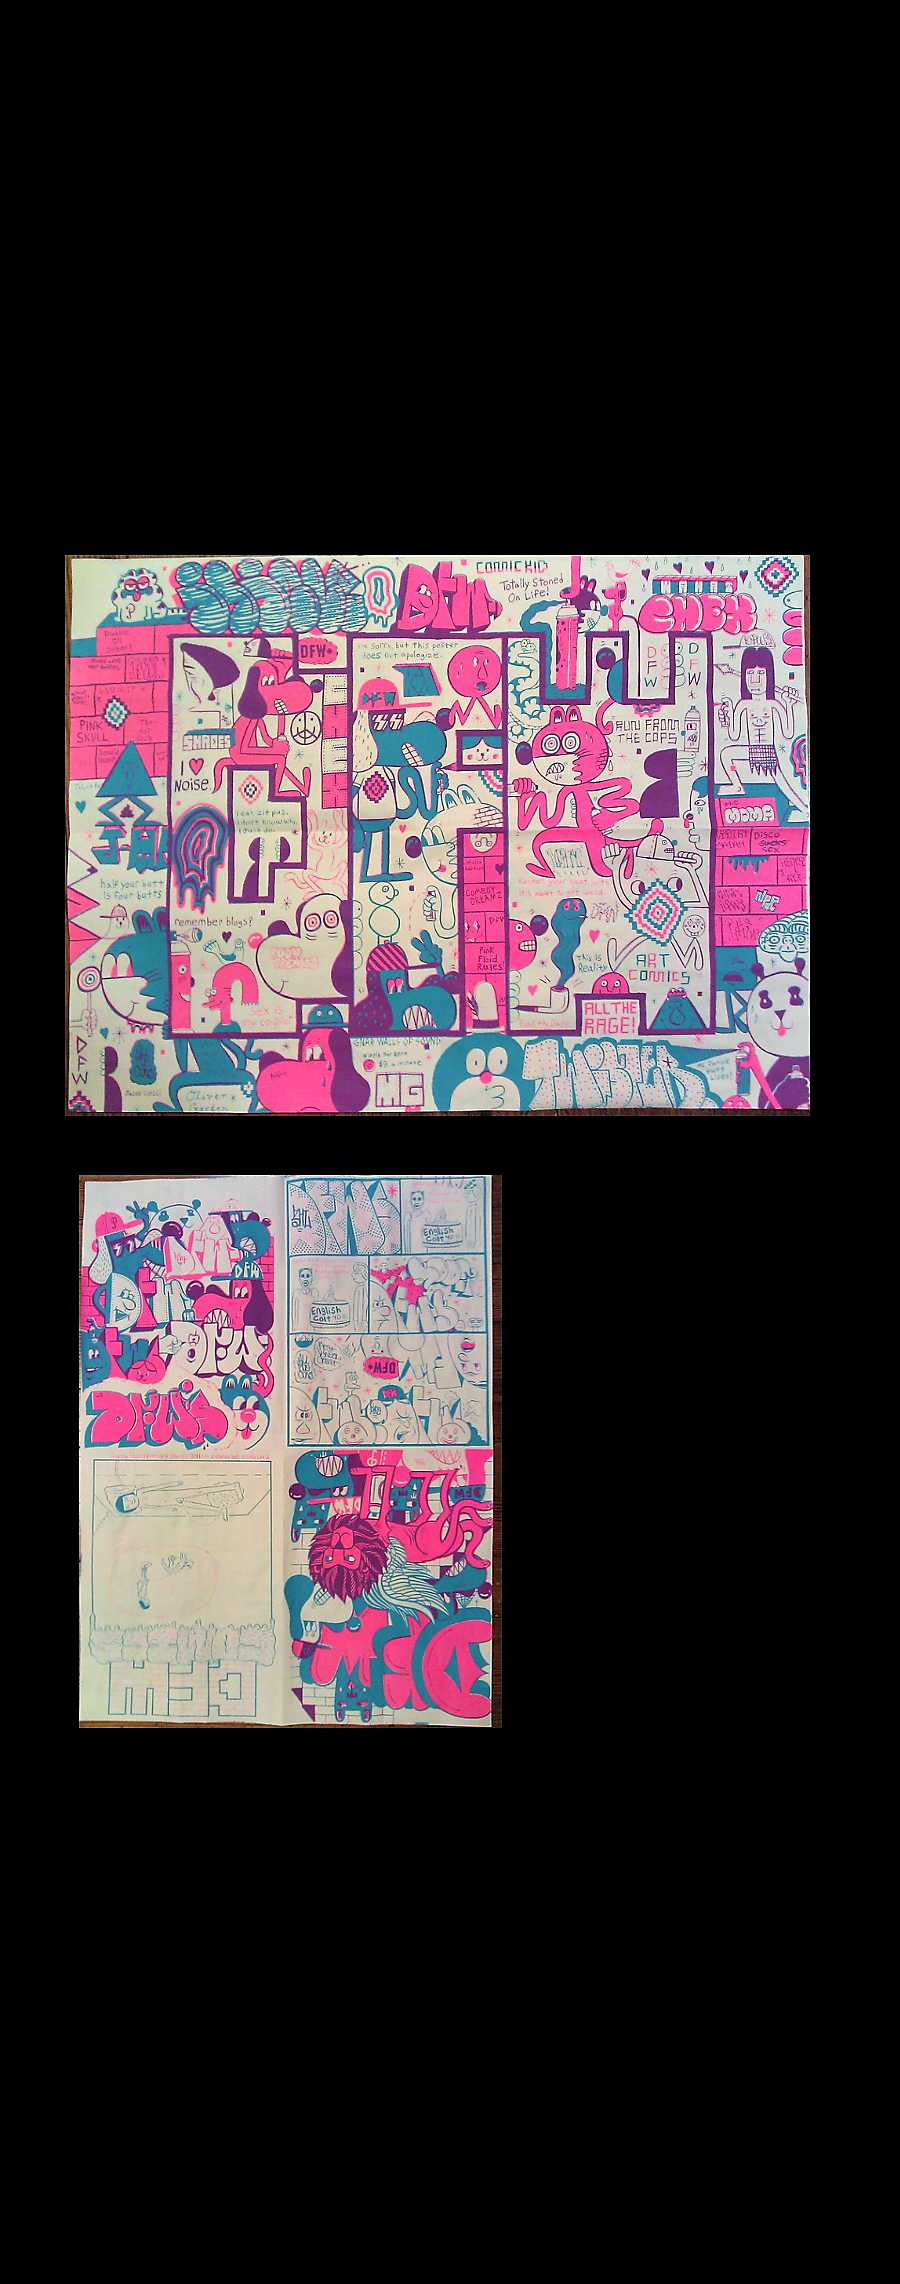 """DFW Comics #1"",  Barry McGee, Isaac T Lin, Andrew Jeffery Wright ,  2011, Edition of 300, unsigned, Double-Sided Poster,,  8-1/2 × 23 in (21.6 × 58.4 cm"